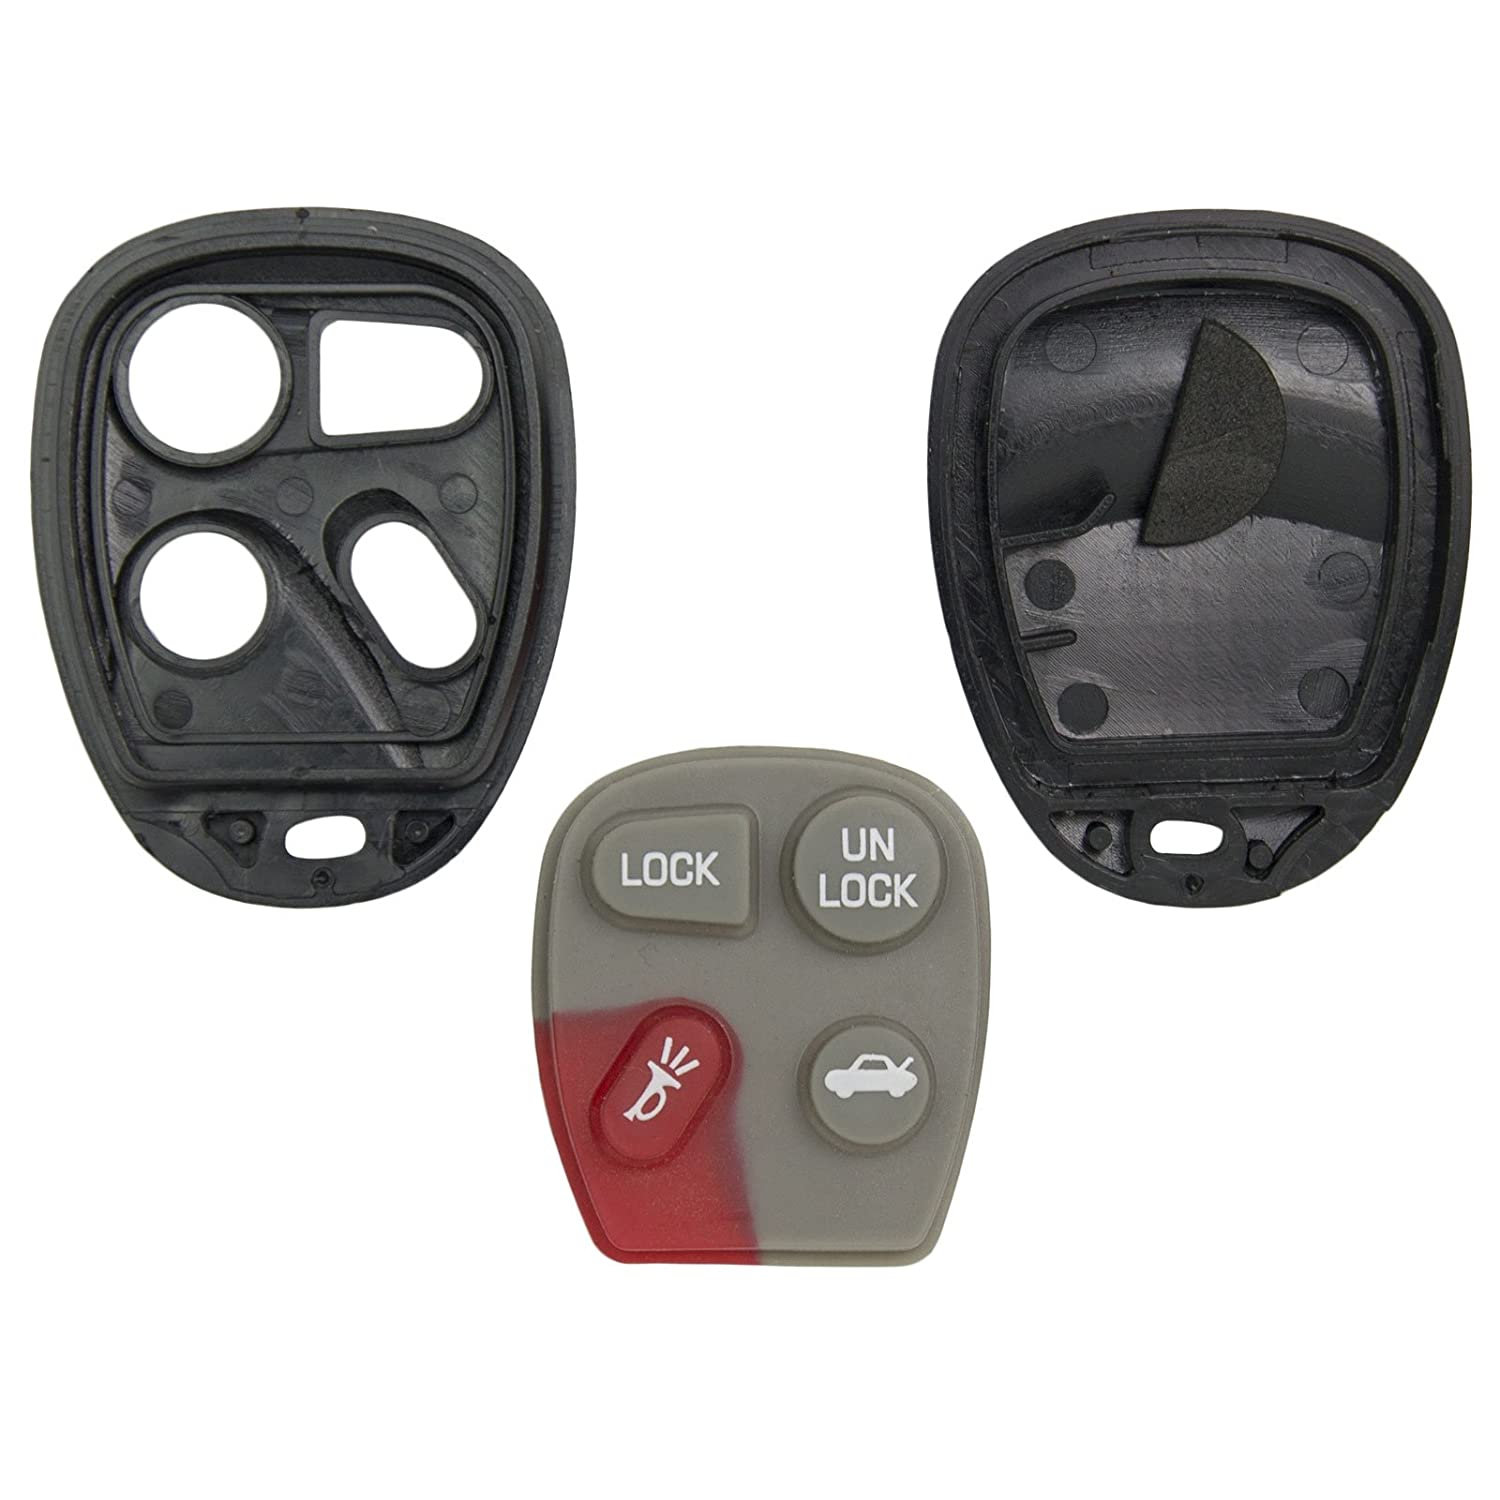 Keyless2Go New Replacement Shell Case and 4 Button Pad for Remote Key Fob FCC KOBLEAR1XT KOBUT1BT Shell ONLY